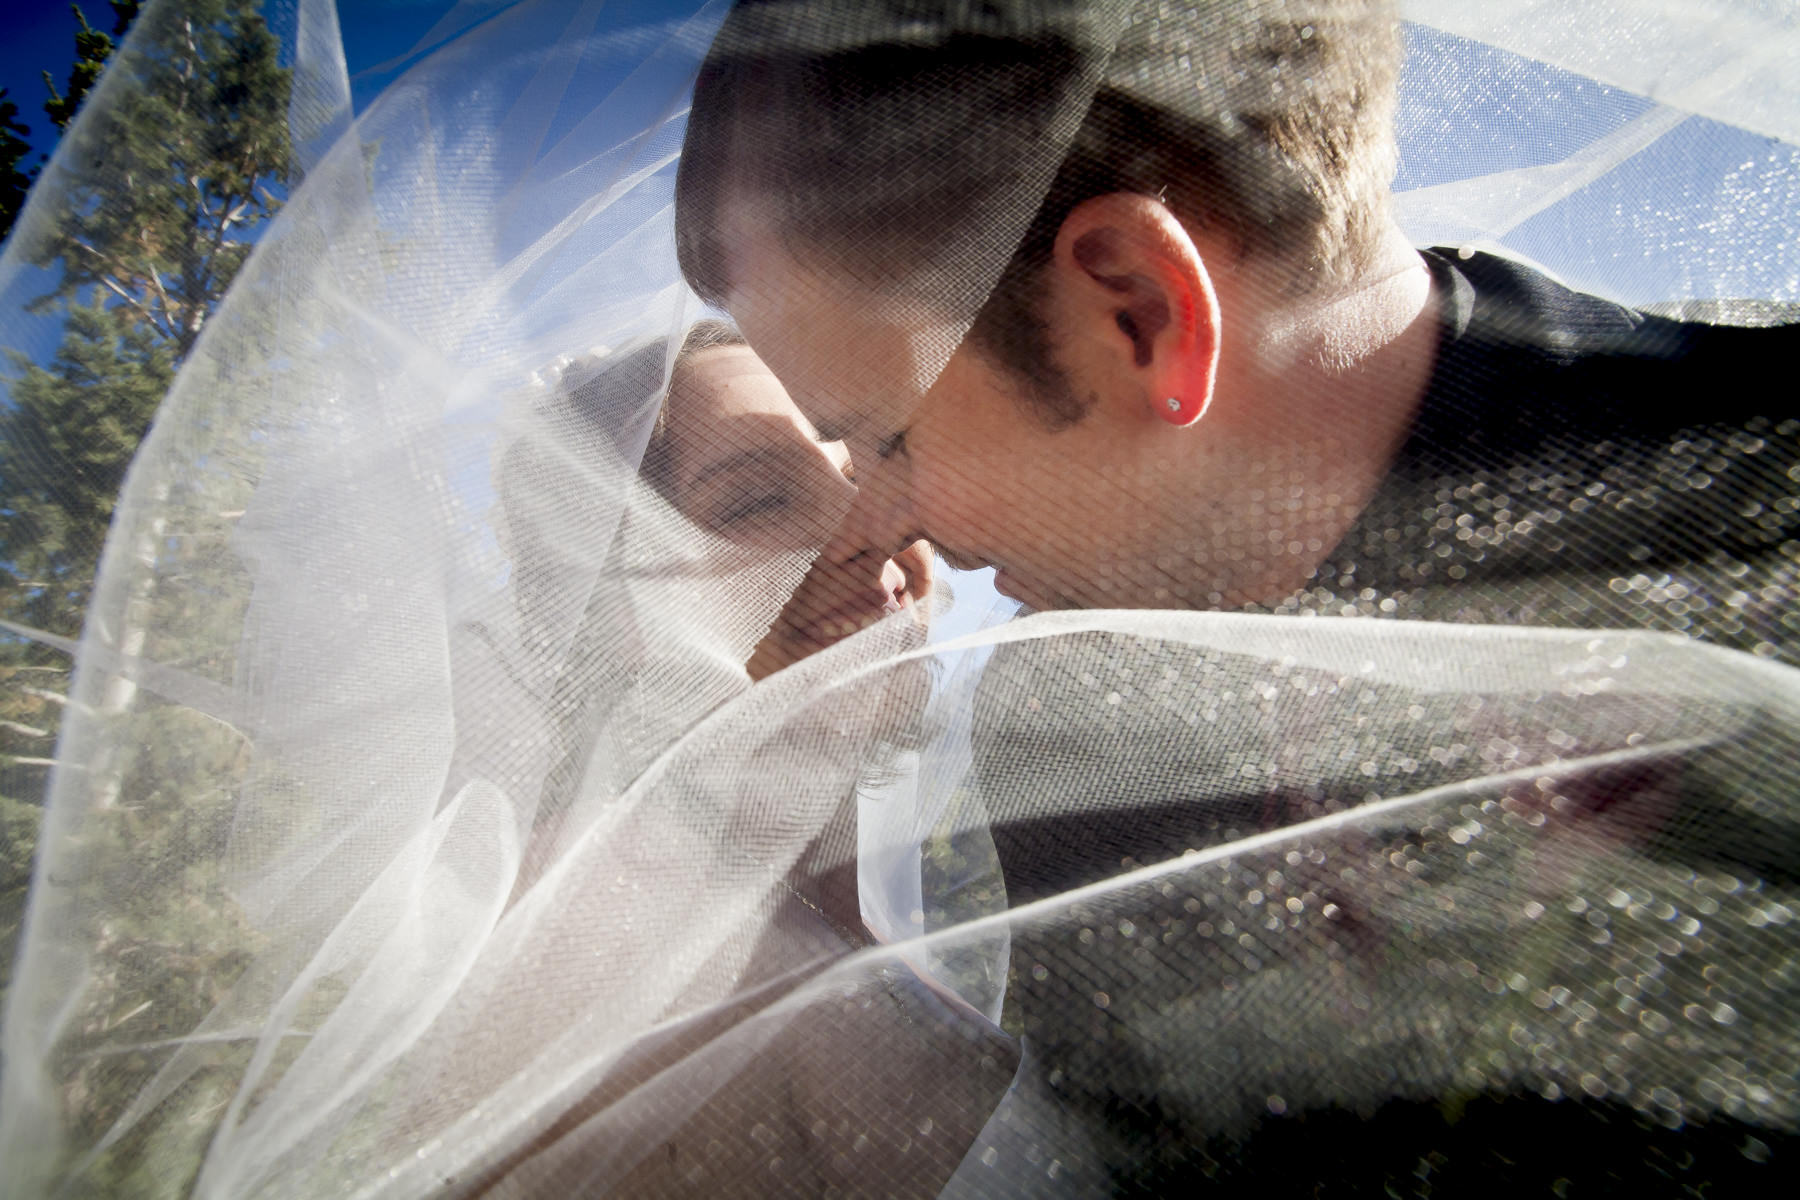 Bride and groom underneath wedding veil with smiling.